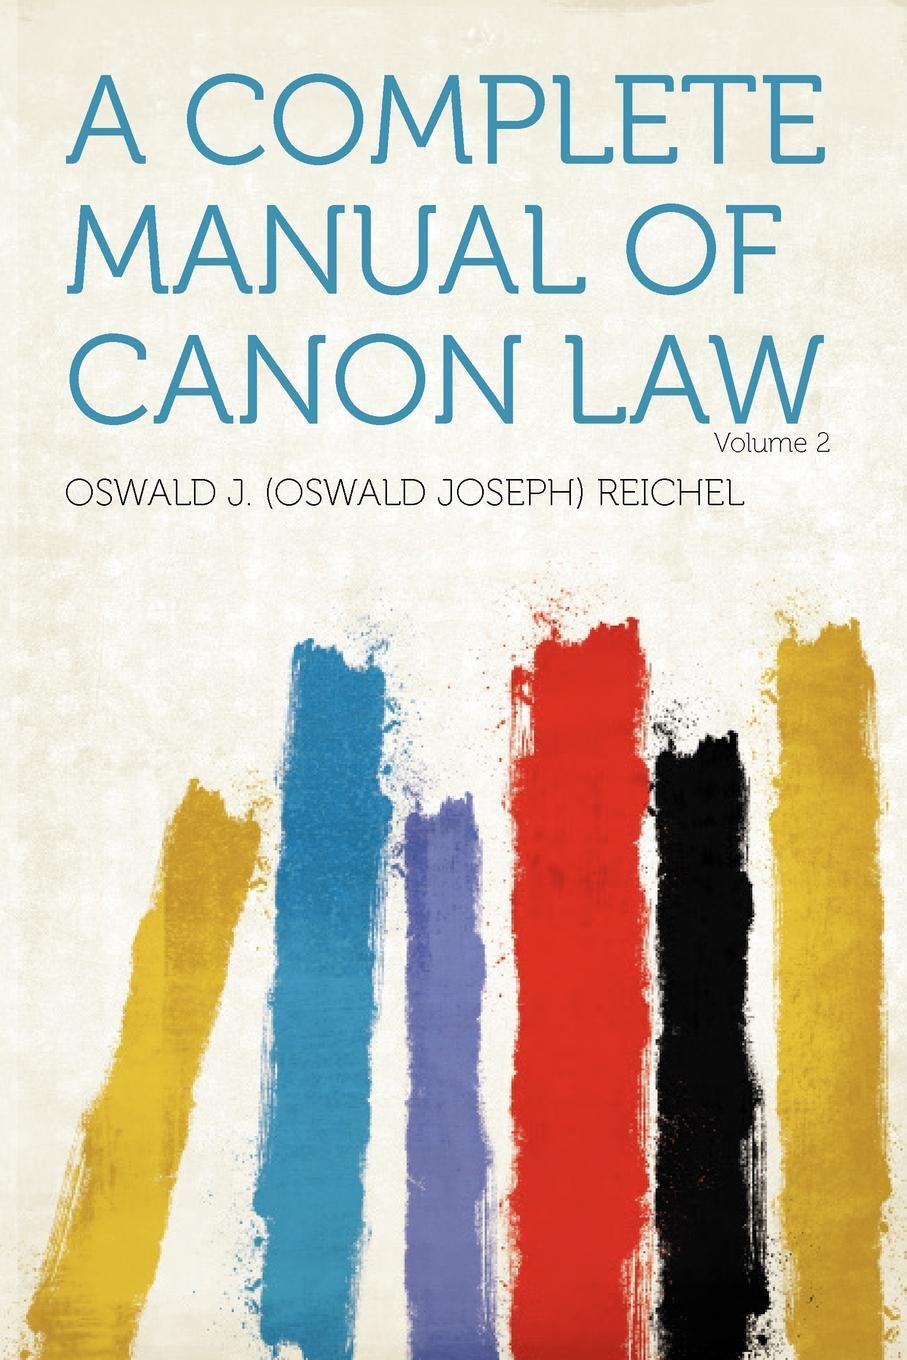 Oswald J. (Oswald Joseph) Reichel. A Complete Manual of Canon Law Volume 2